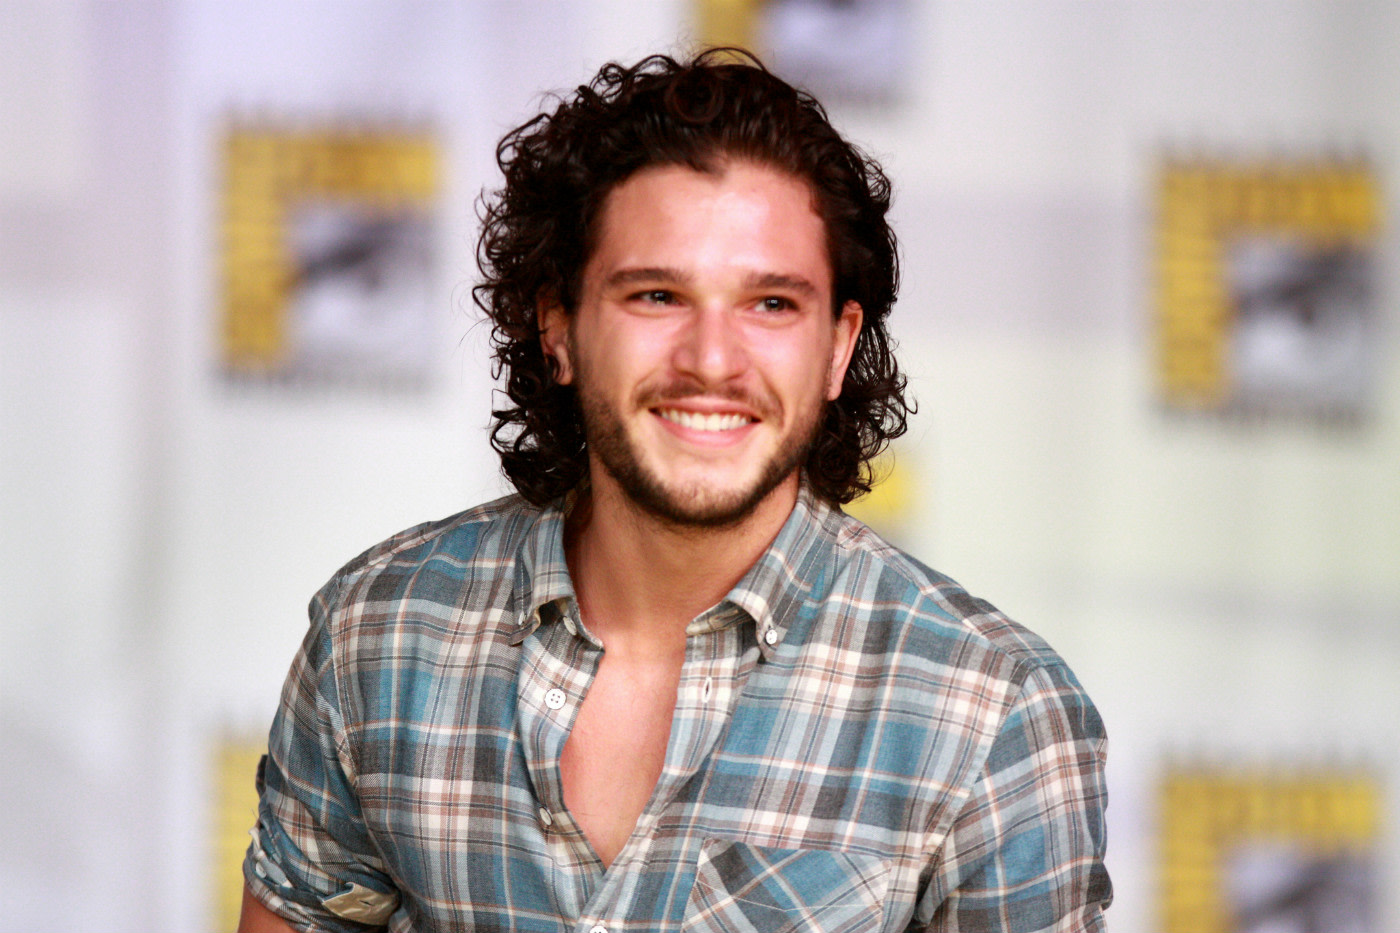 39 Game Of Thrones 39 Star Kit Harington Is In The New 39 Call